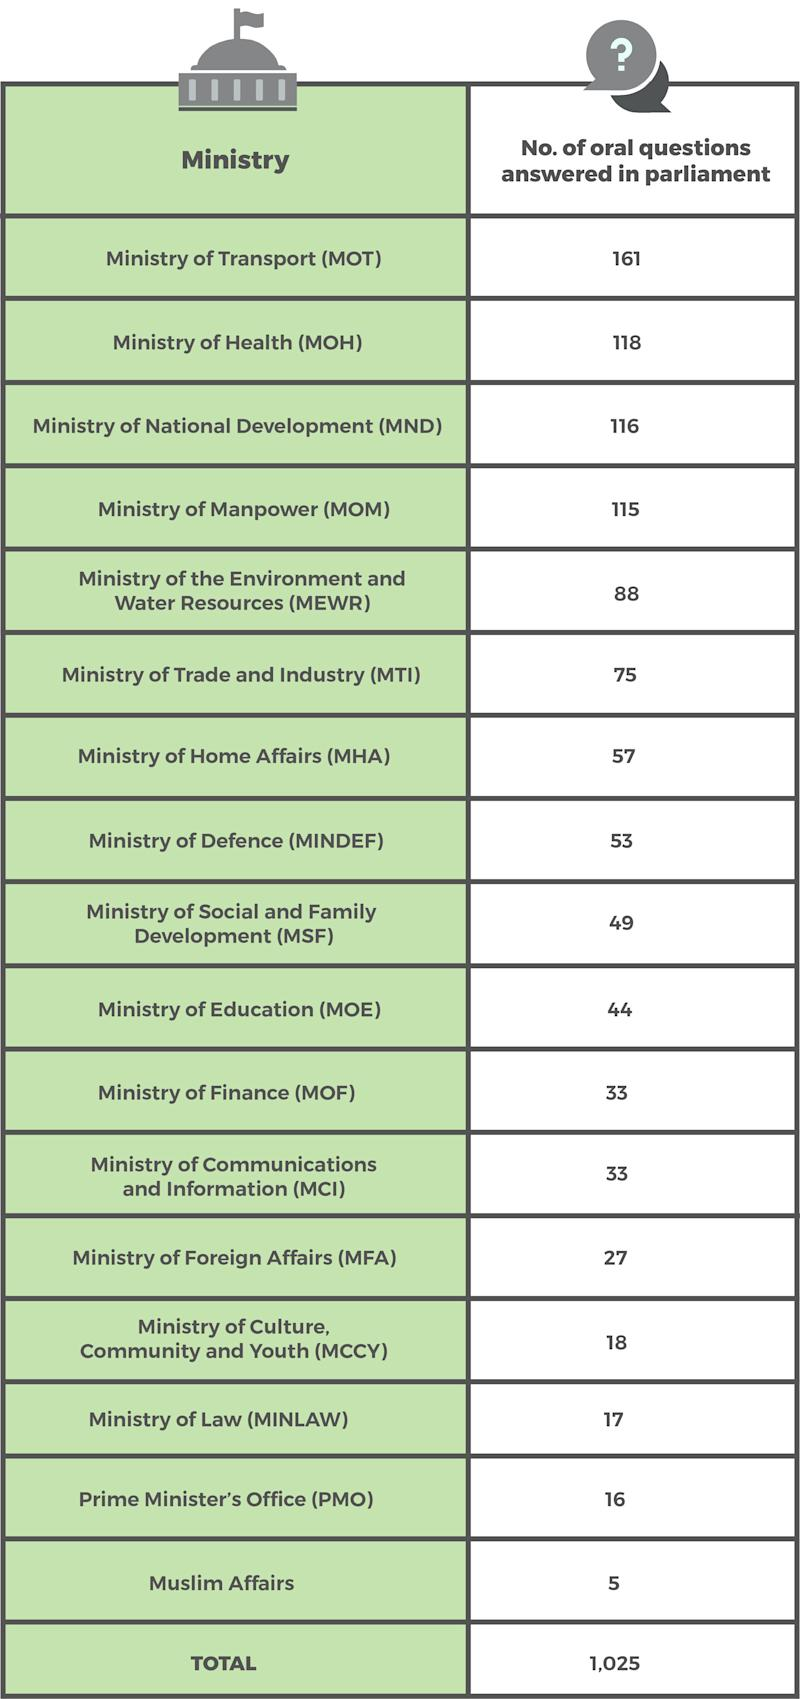 Number of oral questions answered by ministries